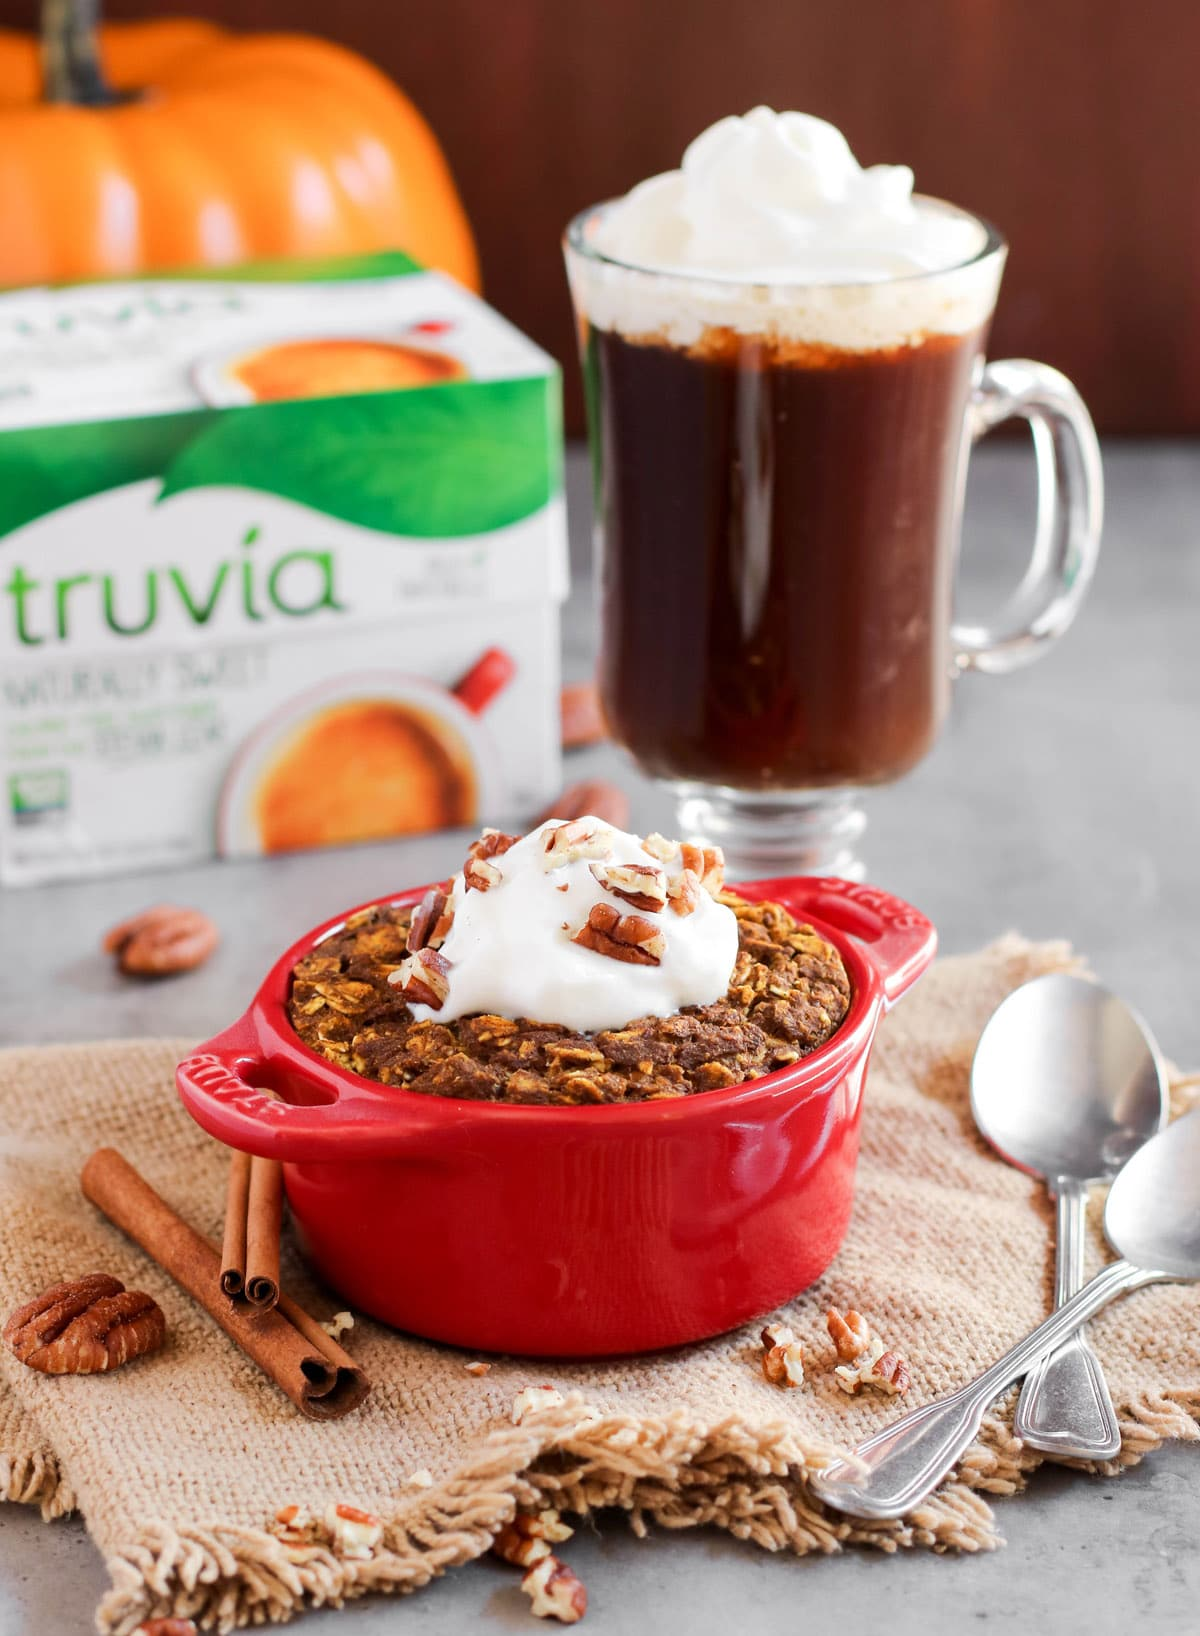 This super easy Healthy Single-Serving Pumpkin Pie Baked Oatmeal recipe is 100% whole grain, gluten free, and vegan, with no added sugar. It's dense, hearty, and filling, just like all baked oatmeal should be, and it's also packed full of pumpkin pie flavor, thanks to the canned pumpkin puree and pumpkin pie spice! #glutenfree #vegan #glutenfreevegan #pumpkinpie #bakedoatmeal #sugarfree #healthybreakfast #pumpkinpuree #pumpkinspice